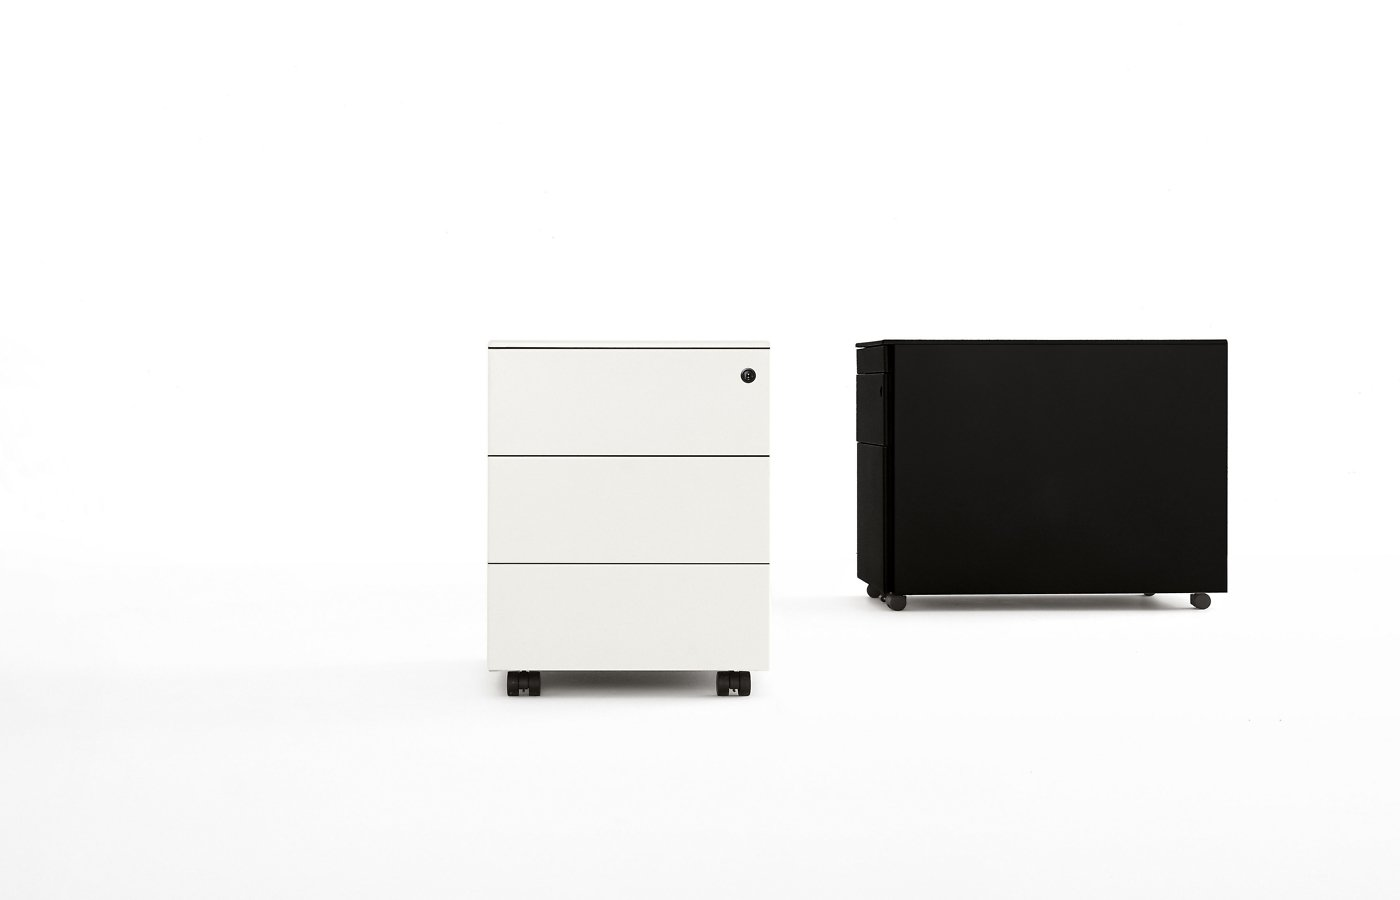 Bureau Metal Drawers cabinet from Kristalia, designed by Bluezone